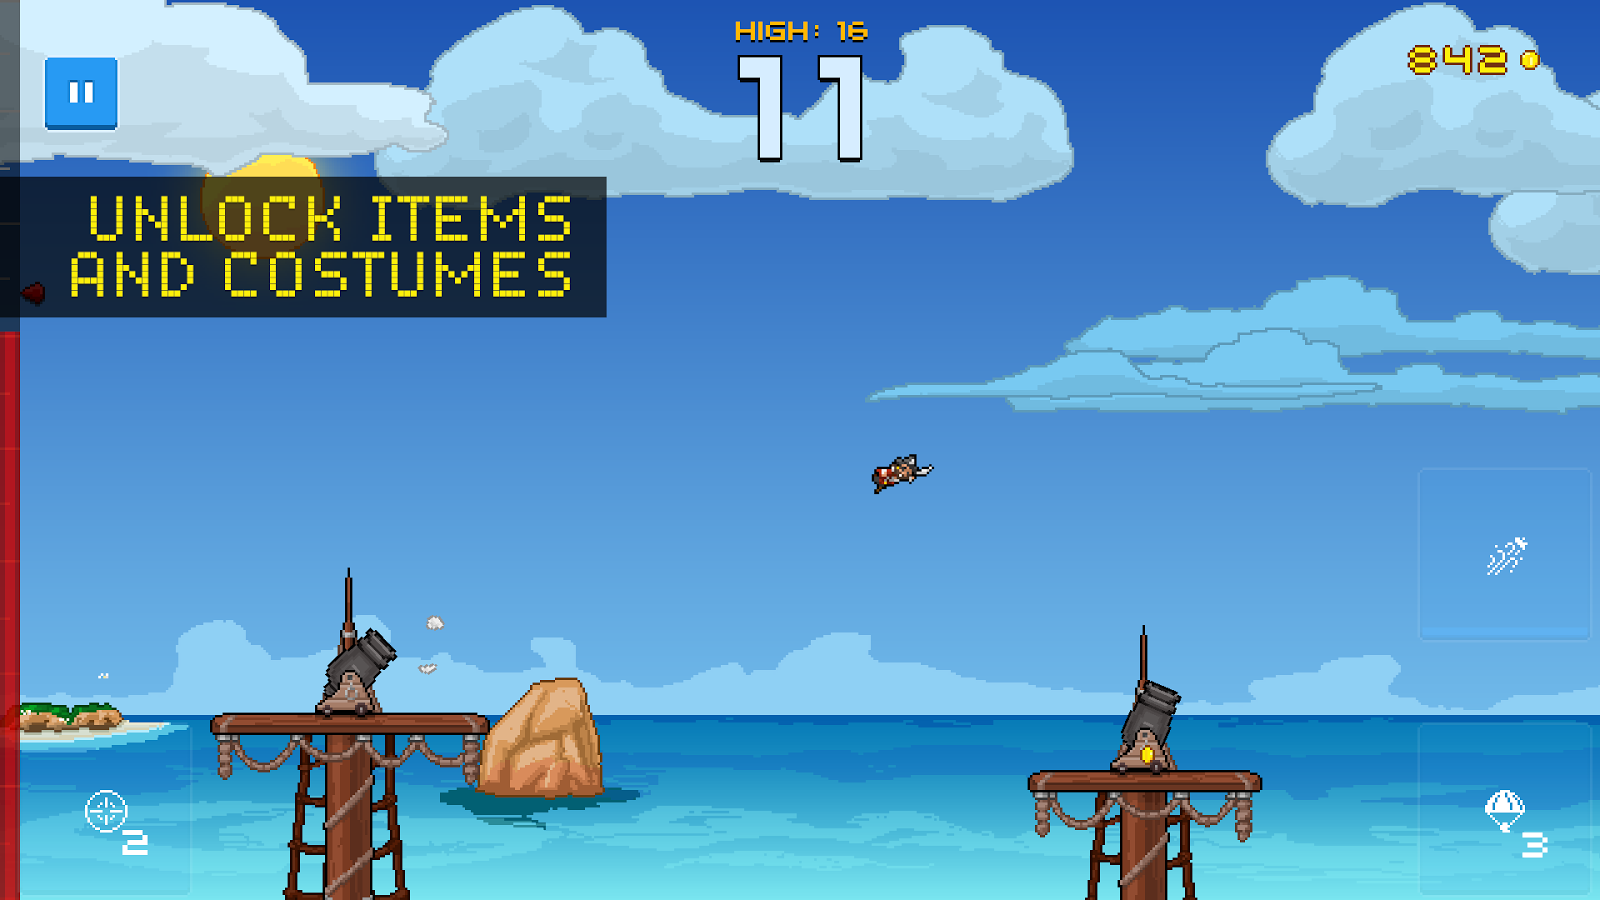 Human Cannonball Screenshot 3